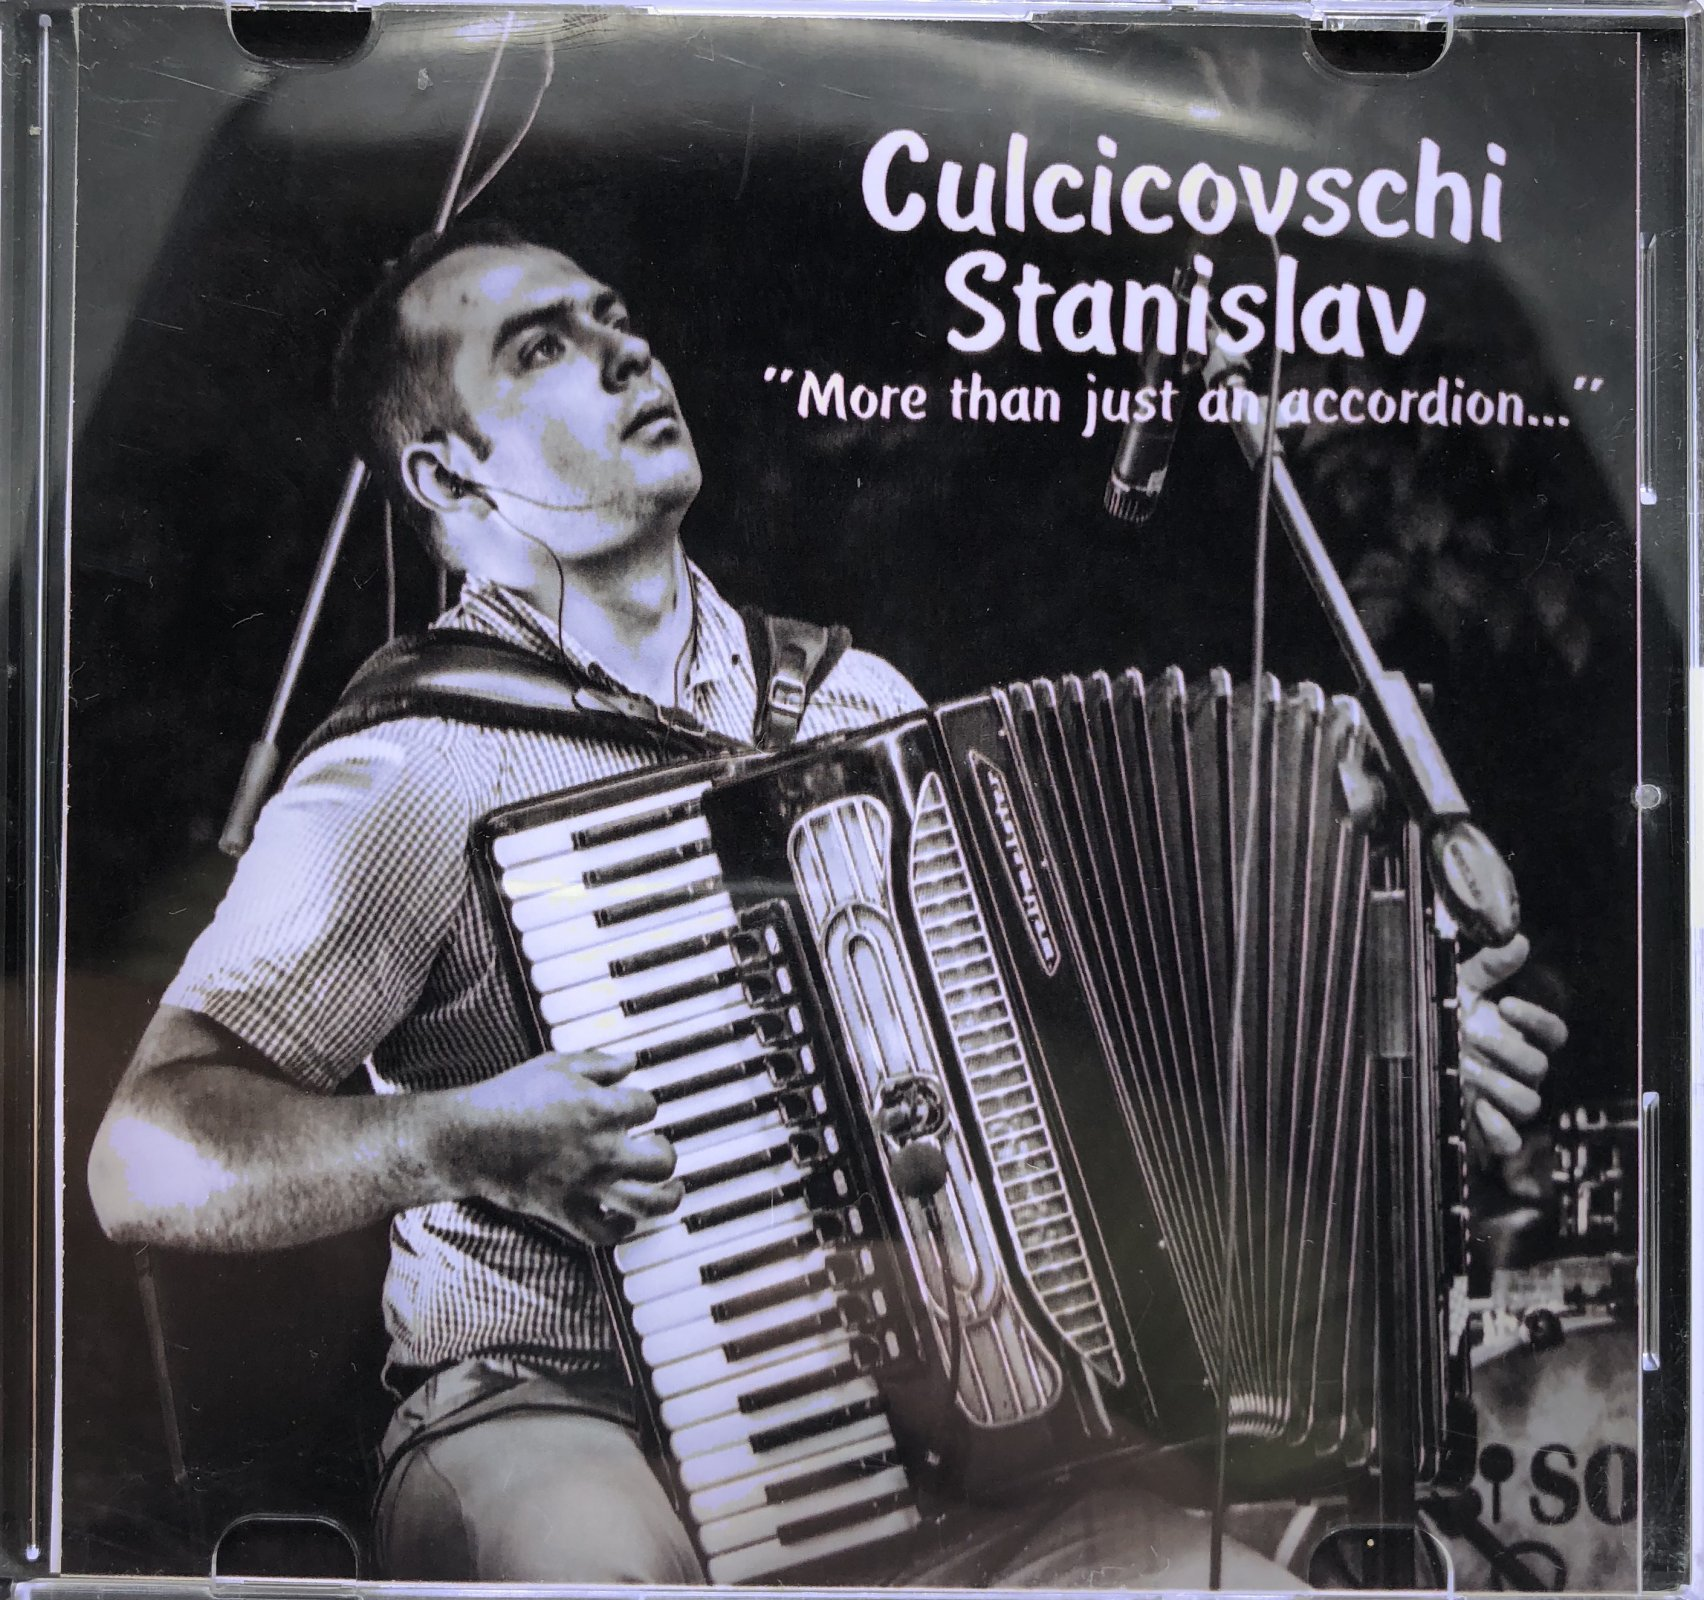 Culcicovschi Stanislav More than just an accordion...